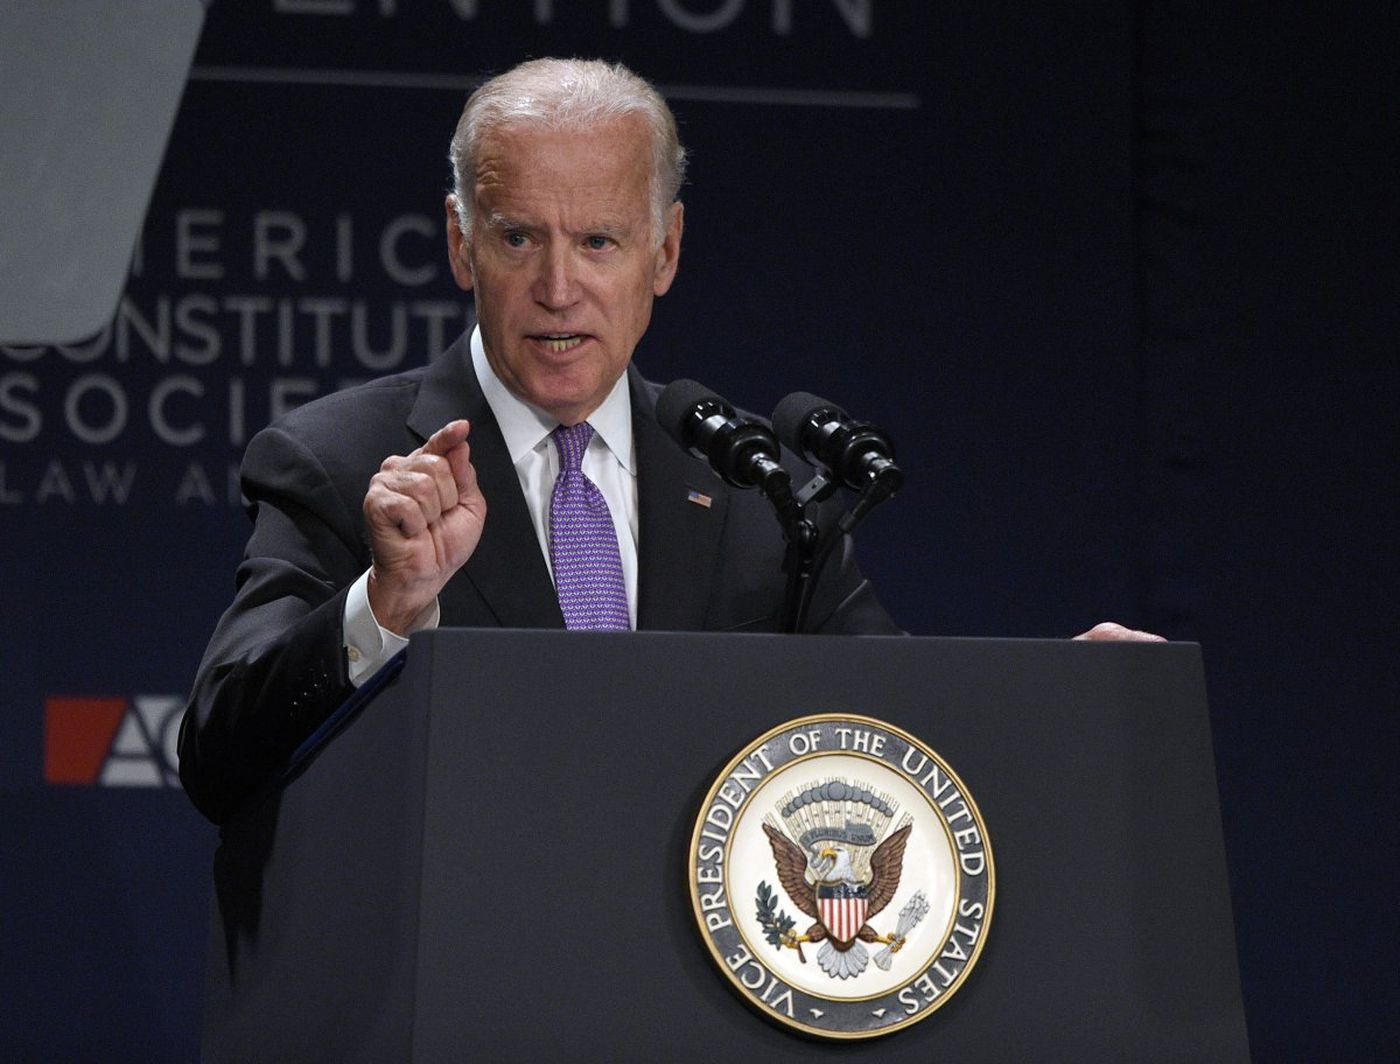 Hillary, stop Biden your time already and give Joe the VP ...